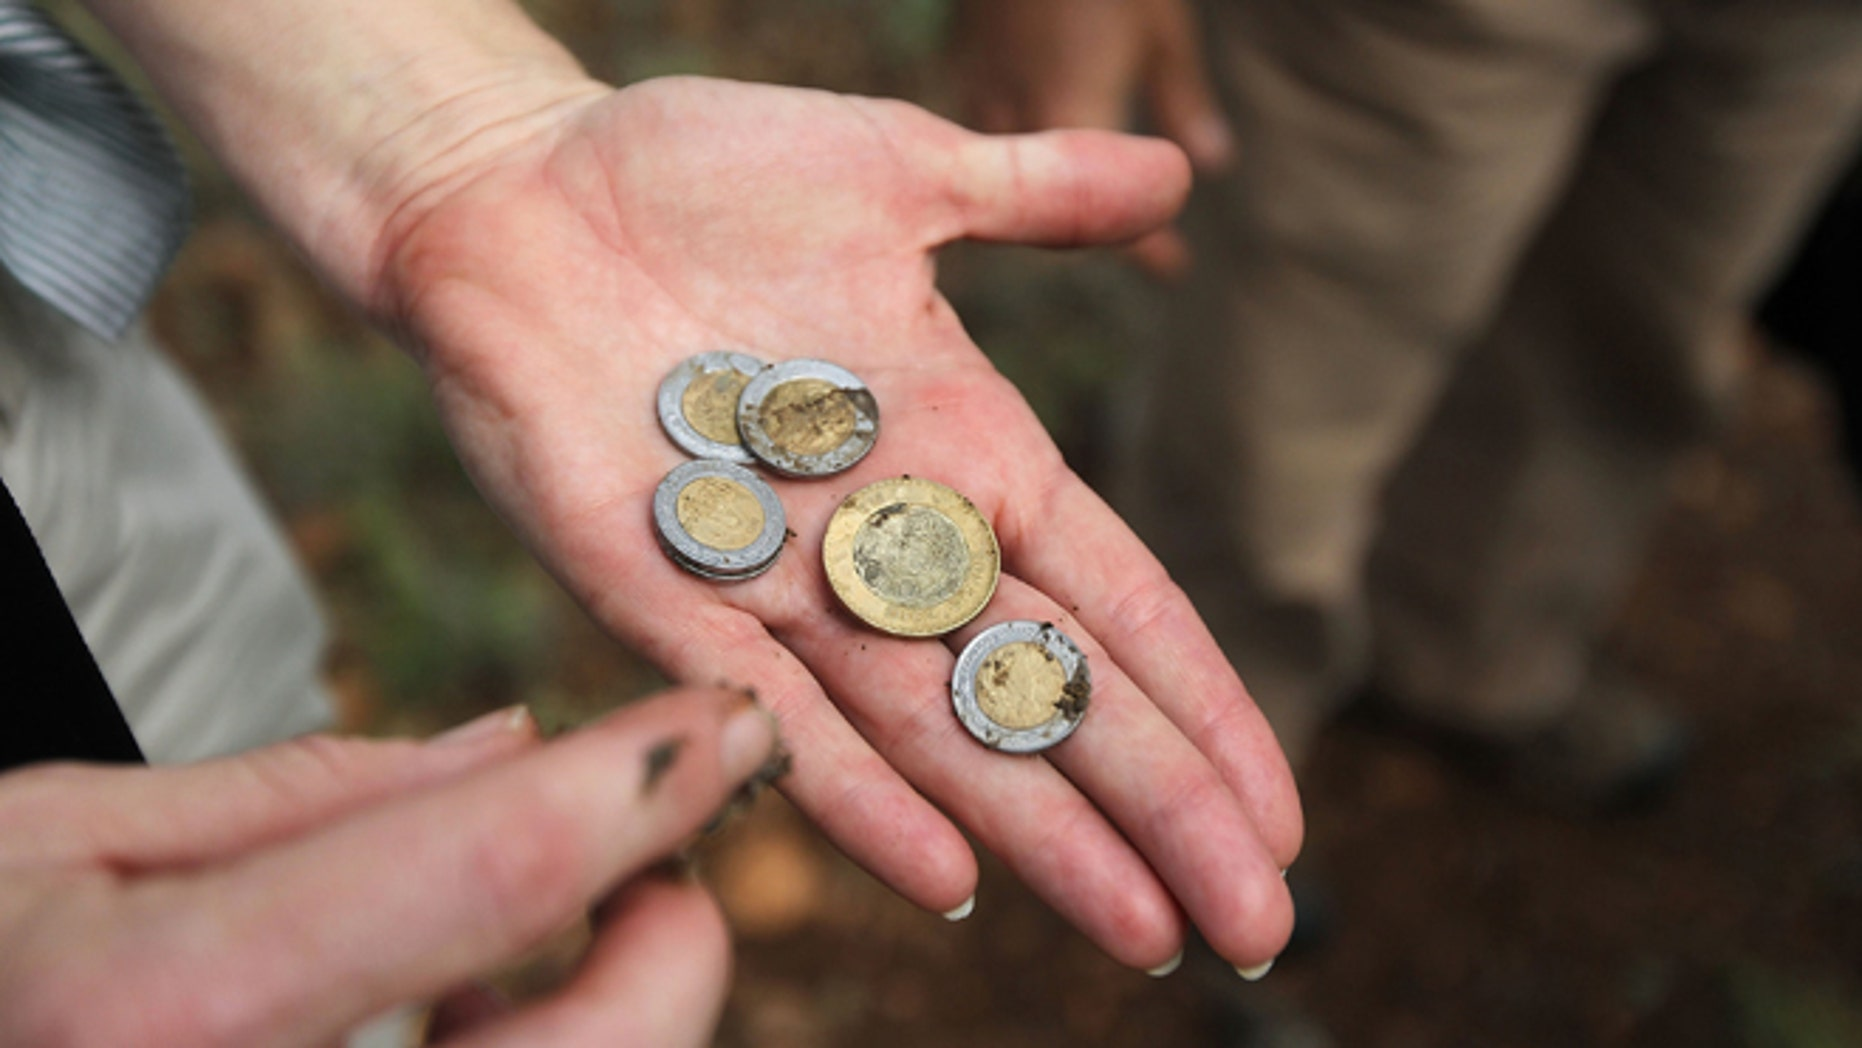 GREEN VALLEY, AZ - JULY 31:  Volunteer Rebecca Fowler displays Mexican pesos found in a backpack discarded by immigrants crossing into Arizona from Mexico along a backcountry trail on July 31, 2010 near Green Valley, Arizona. She was on a patrol for the non-profit group Samaritans, which delivers water to points near the U.S. Mexico border for immigrants crossing illegally into Arizona. Samaritans volunteers also provide medical assistance for distressed migrants, who often suffer from severe dehydration while crossing the desert. Immigrant aid groups and law enforcement alike say that the number of immigrants crossing illegally into Arizona from Mexico has slowed dramatically in 2010, with jobs scarce due to the U.S. recession and widespread fear in the Latino community associated with Arizona's new immigration enforcement law SB 1070. (Photo by John Moore/Getty Images) *** Local Caption *** Rebecca Fowler